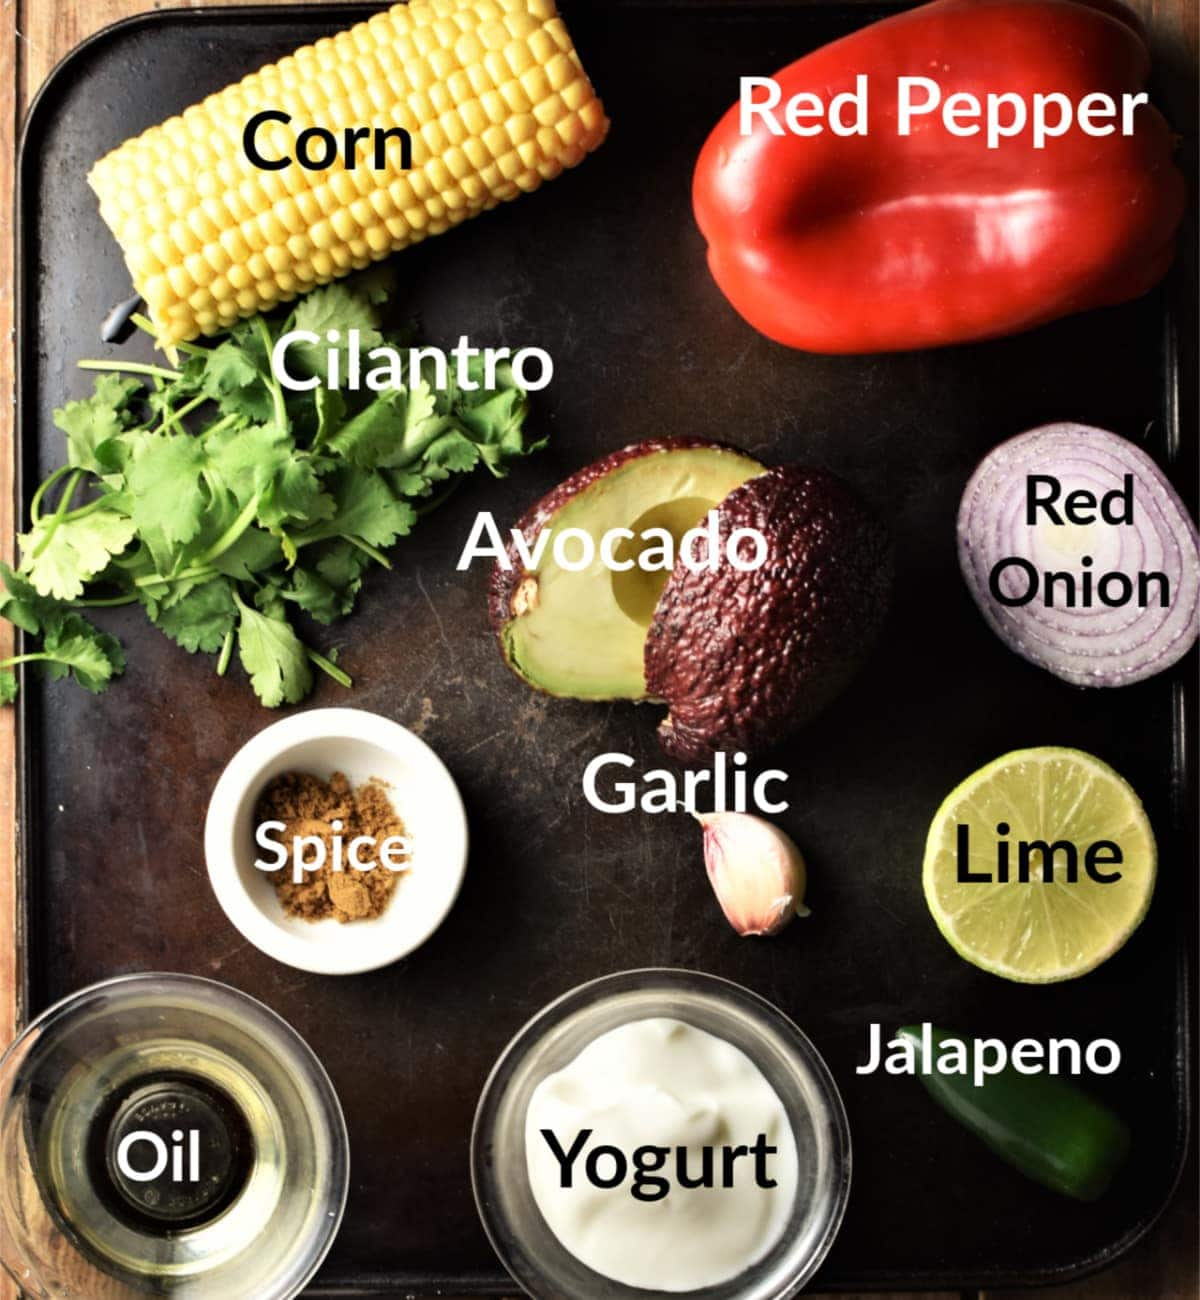 Corn salsa ingredients with labels in individual dishes on top of dark tray.